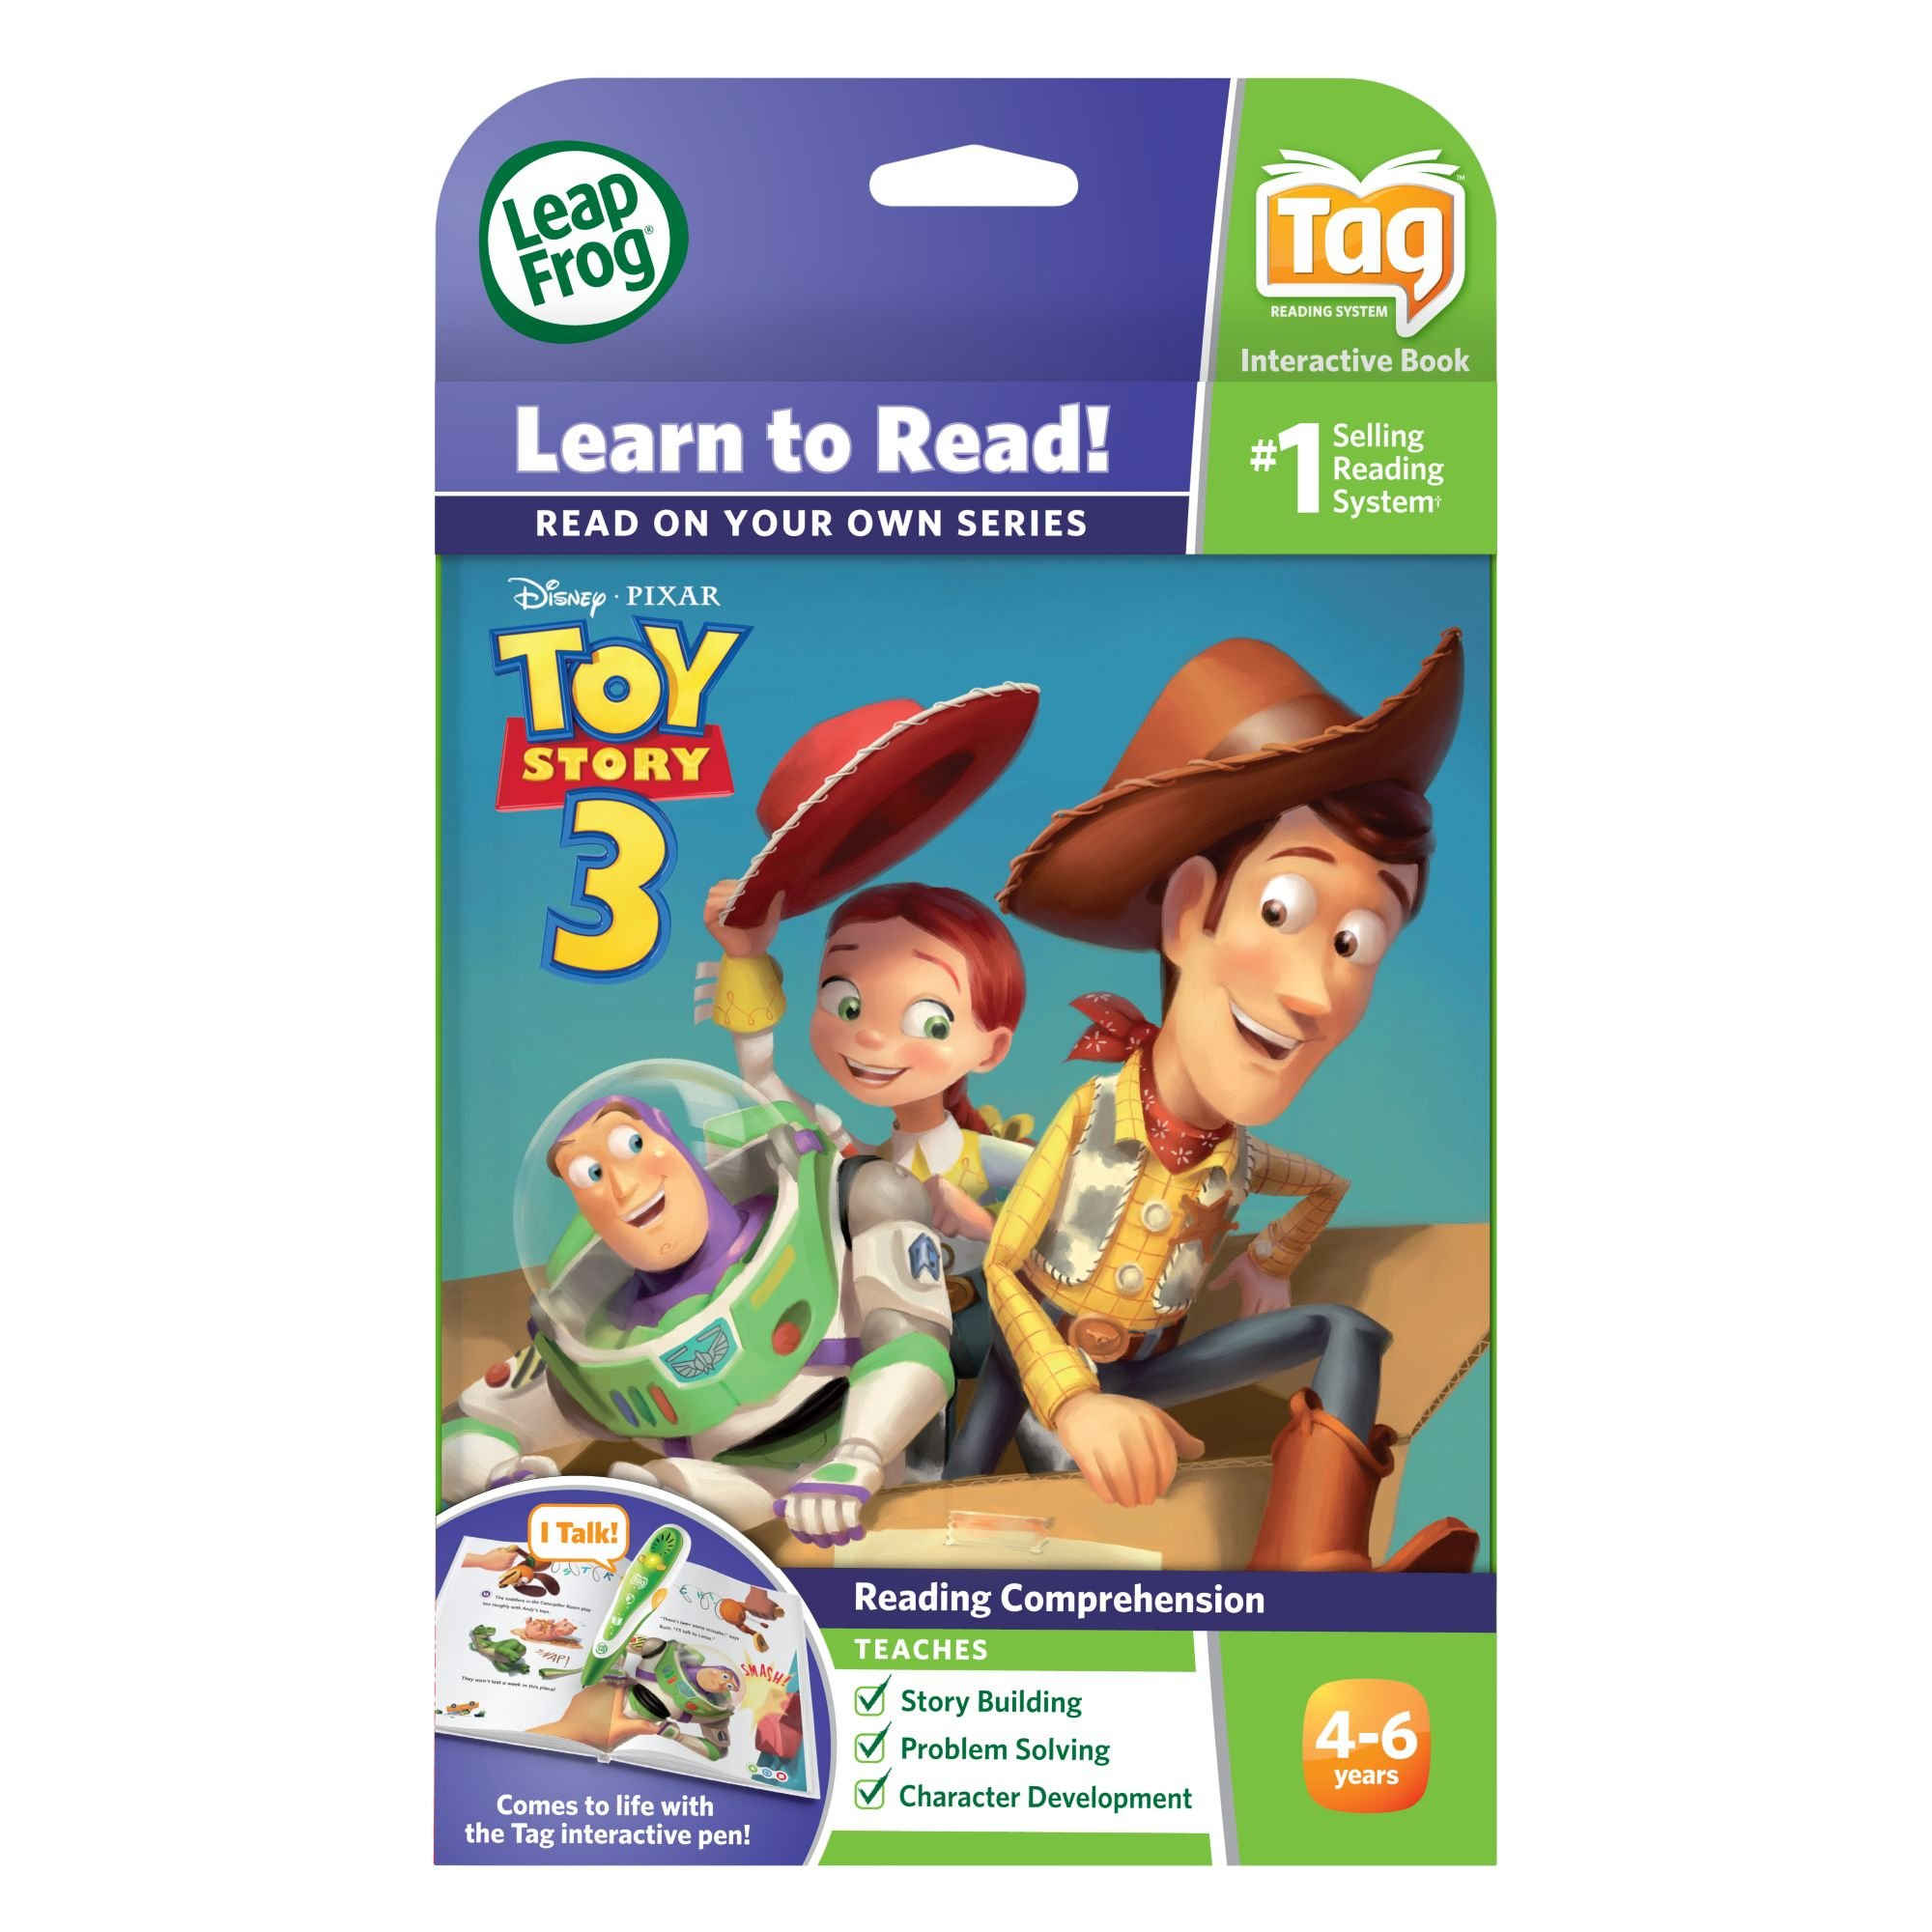 LeapFrog LeapReader Book: Disney Pixar Toy Story 3: Together Again (works with Tag) Packaging May Vary by LeapFrog (Image #3)